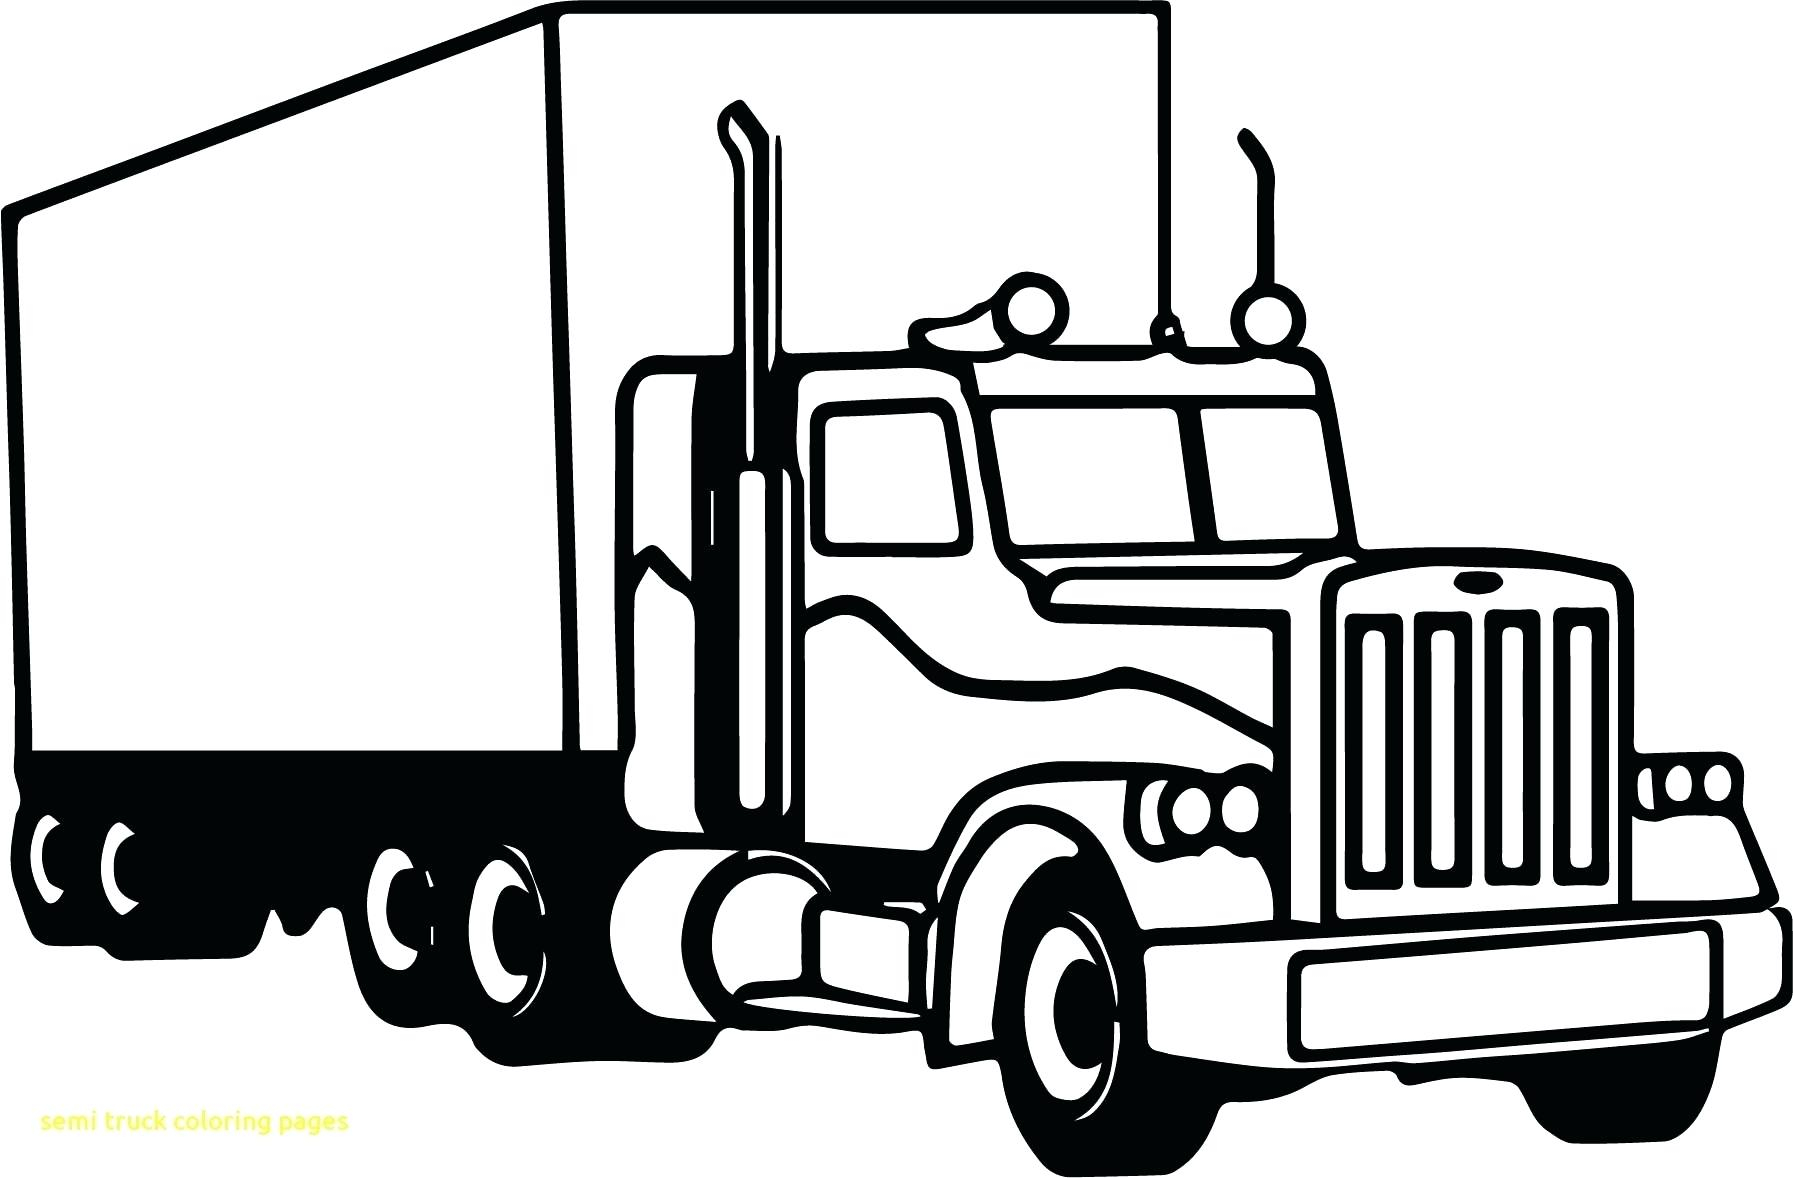 Adult Coloring Pages Trucks Dump Truck Coloring Pages Inspirational Semi Free Download Of